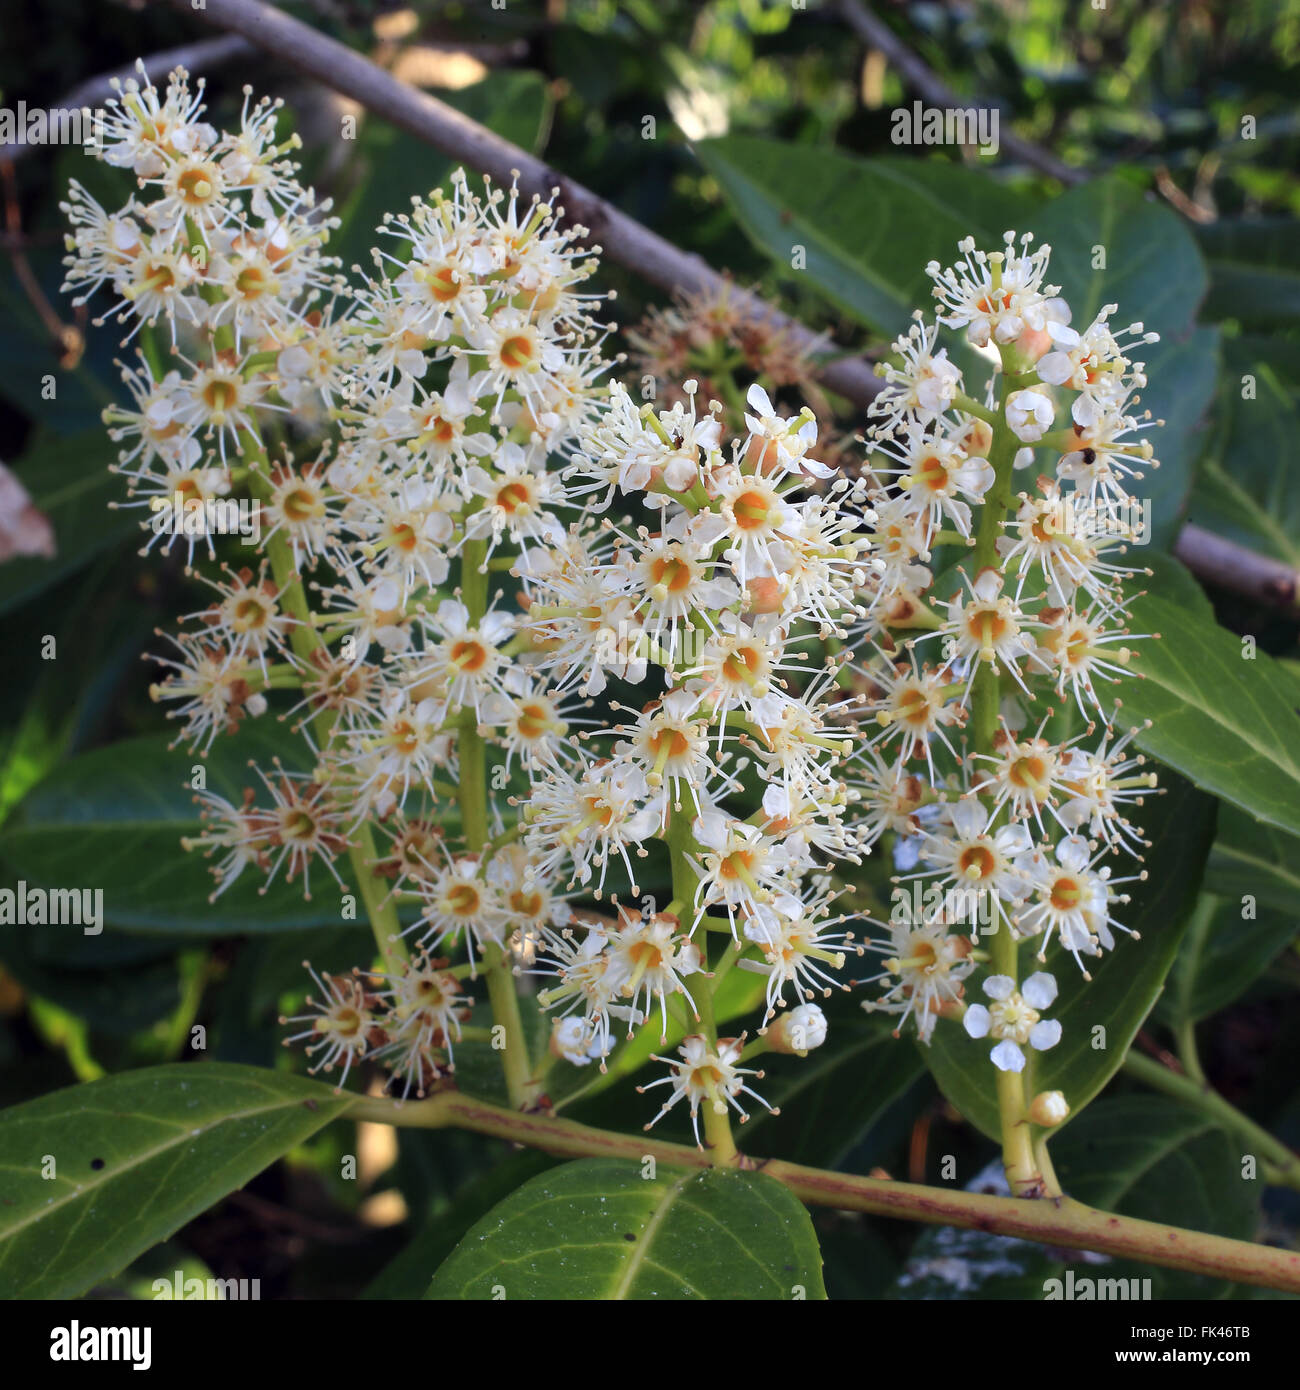 Flower heads of the Cherry Laurel (also known as Common Laurel or English Laurel, Prunus laurocerasus), Cornwall, - Stock Image